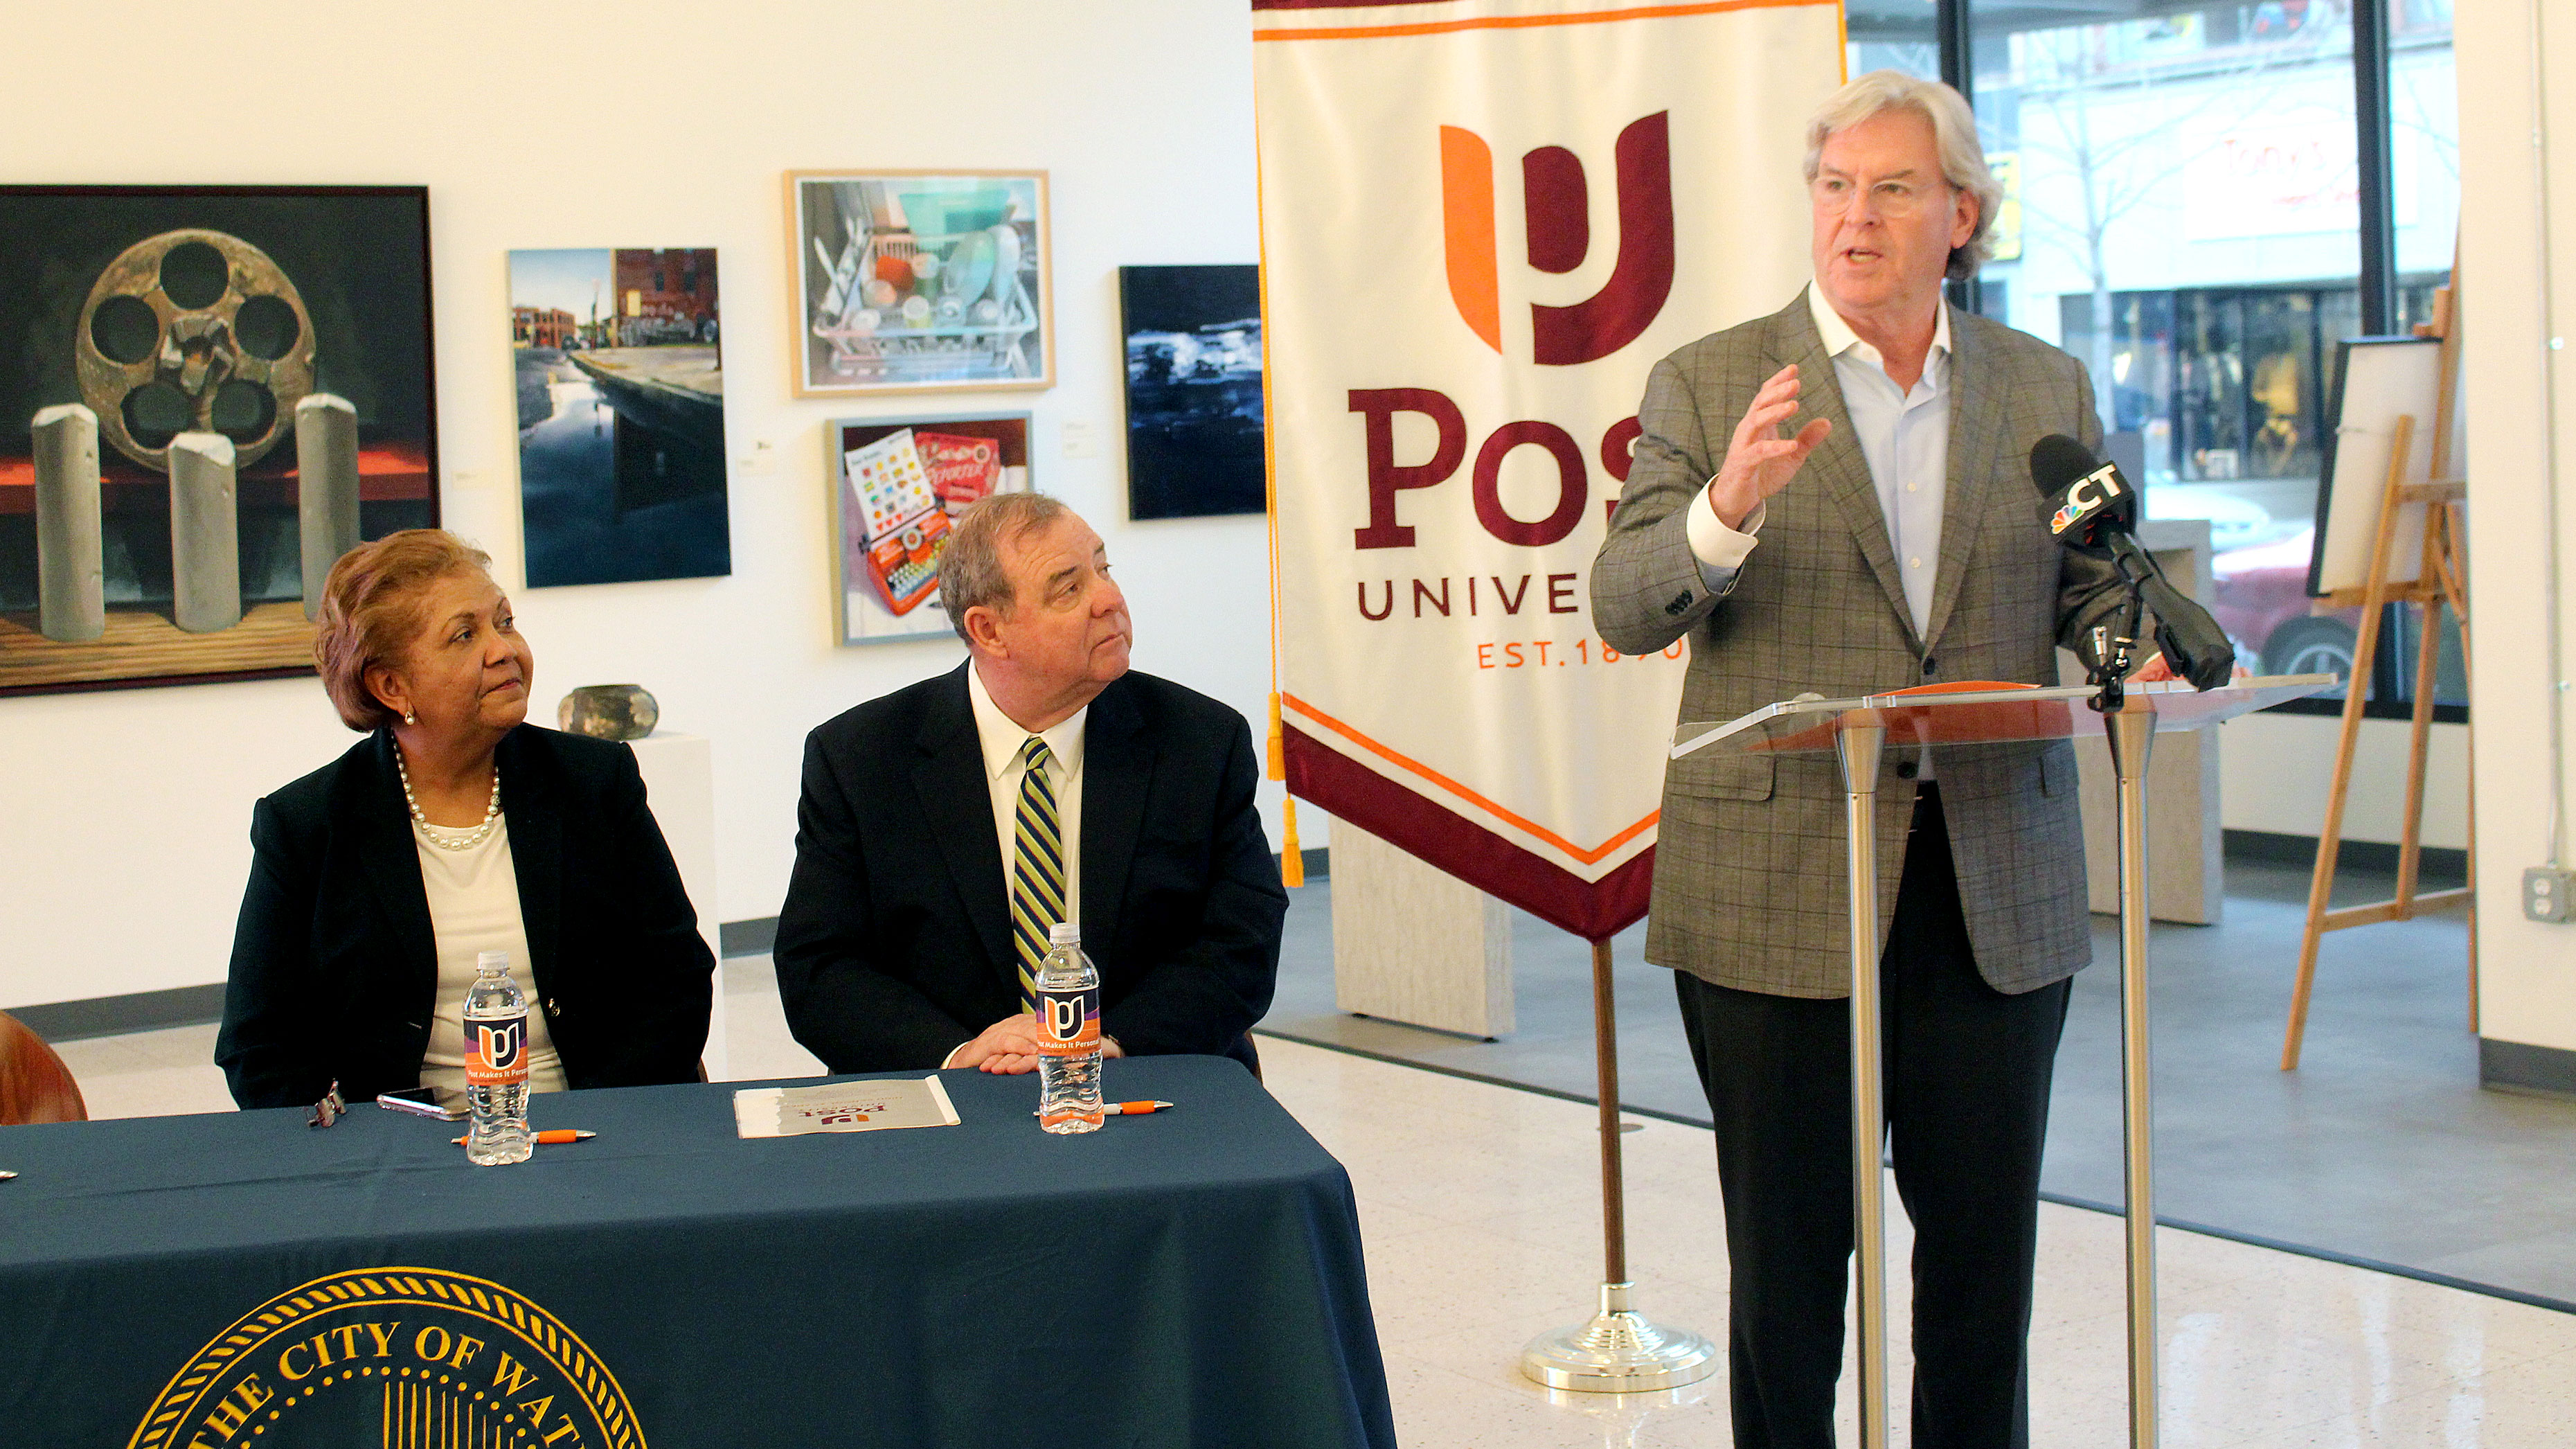 John Hopkins giving a speech at Post University in Waterbury CT as Dr. Verna Ruffin and Major Neil O'Leary look on